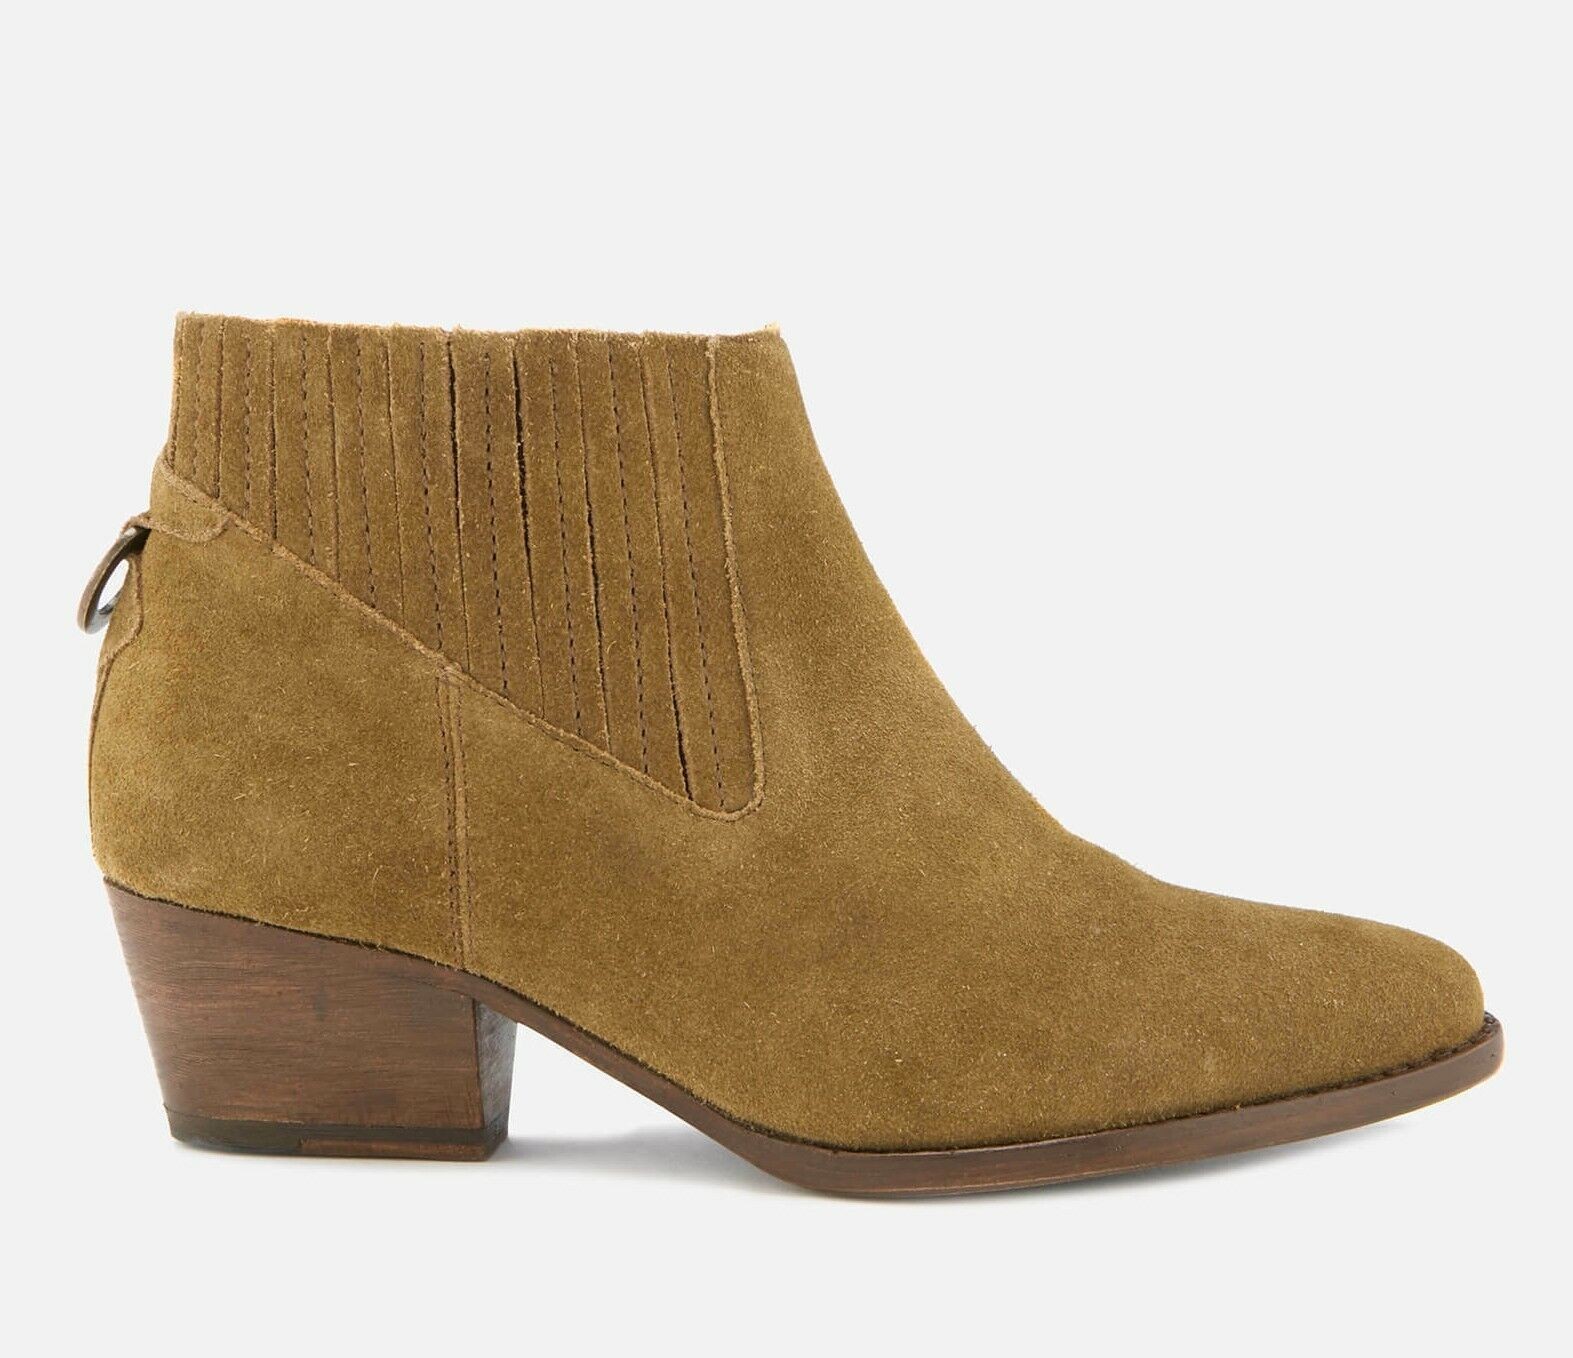 H By Hudson Sand Ernest Suede Leather Heeled Ankle Slip On Western Stiefel 3 to 6